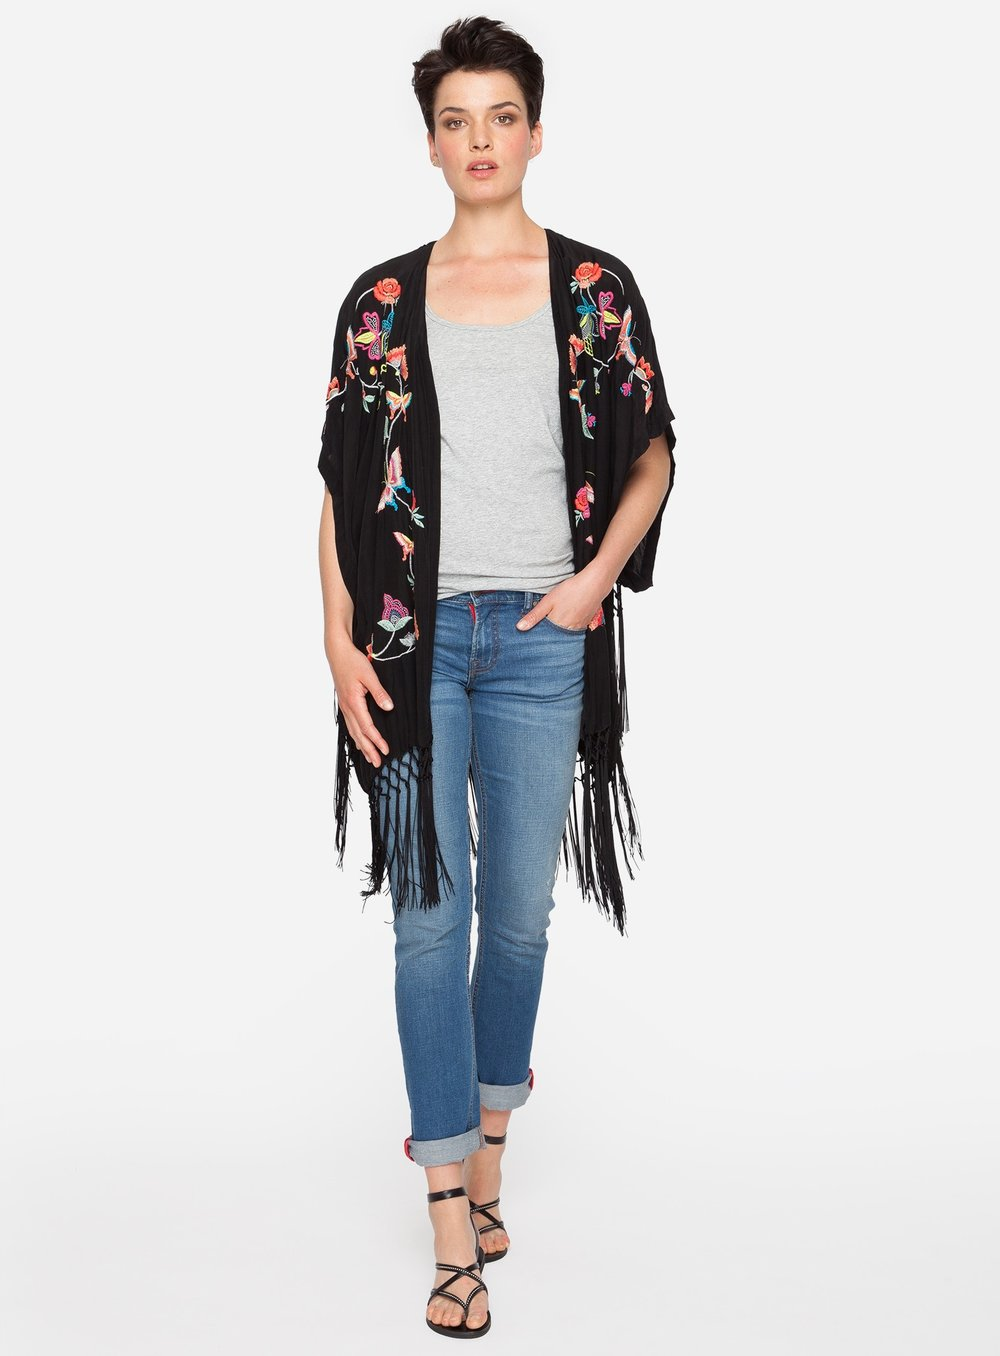 Fringe - Another summer element we are seeing fit right into the bohemian look is fringe. This Johnny Was Fairytale Kimono is perfect if you need a little more coverage on your arms. The colorful embroidery makes it suitable work or play.